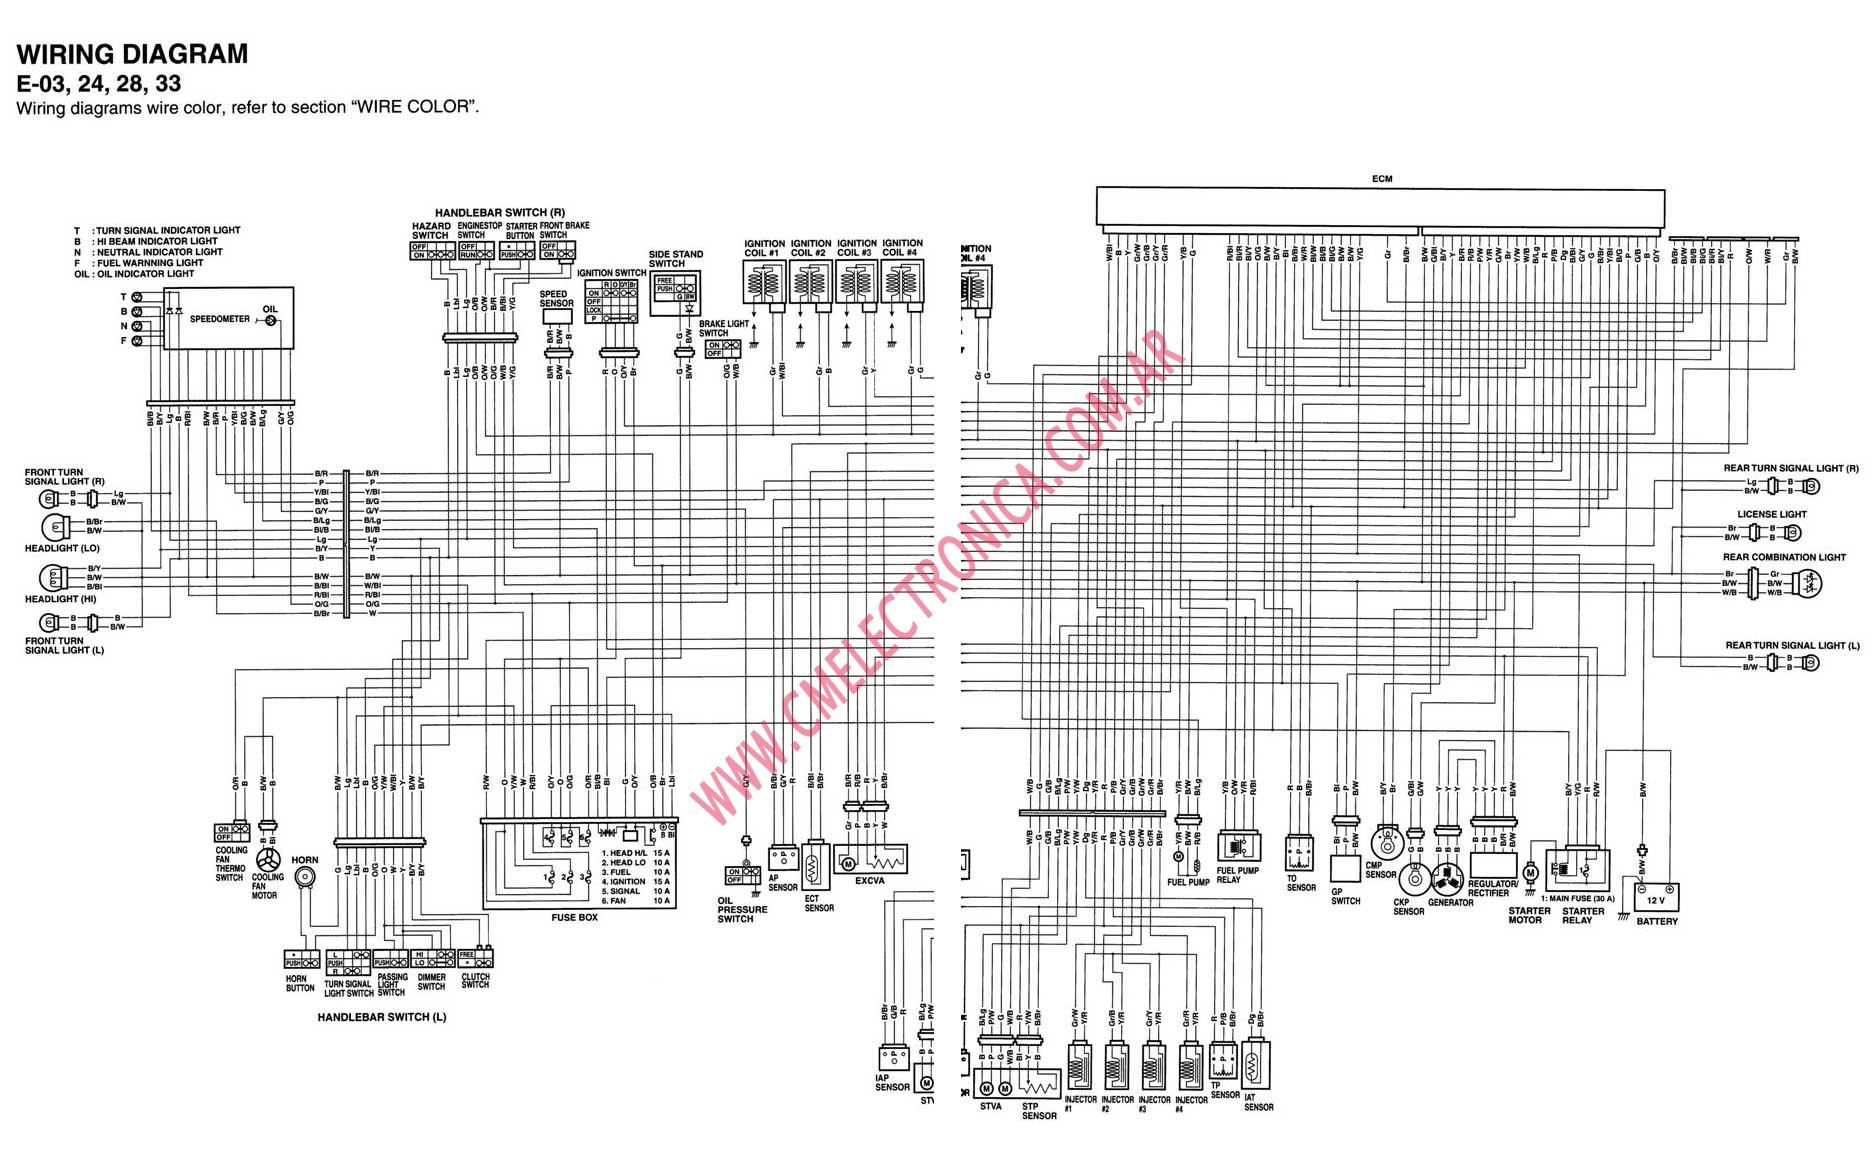 2004 gsxr 1000 wiring diagram wiring schematic diagram Gsxr 1000 Oil Pump